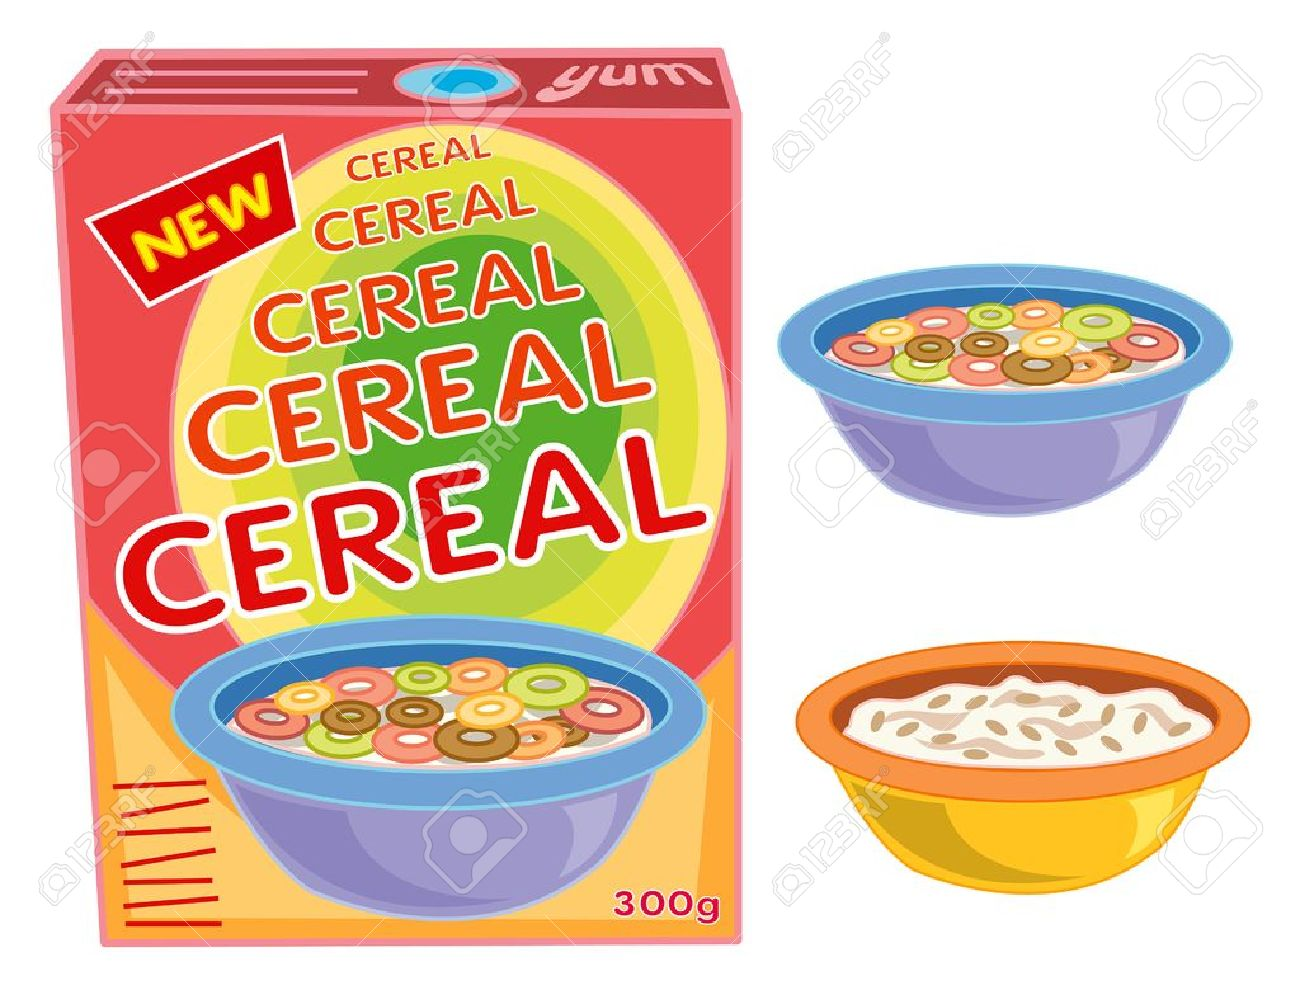 Clipart Cereal Box.